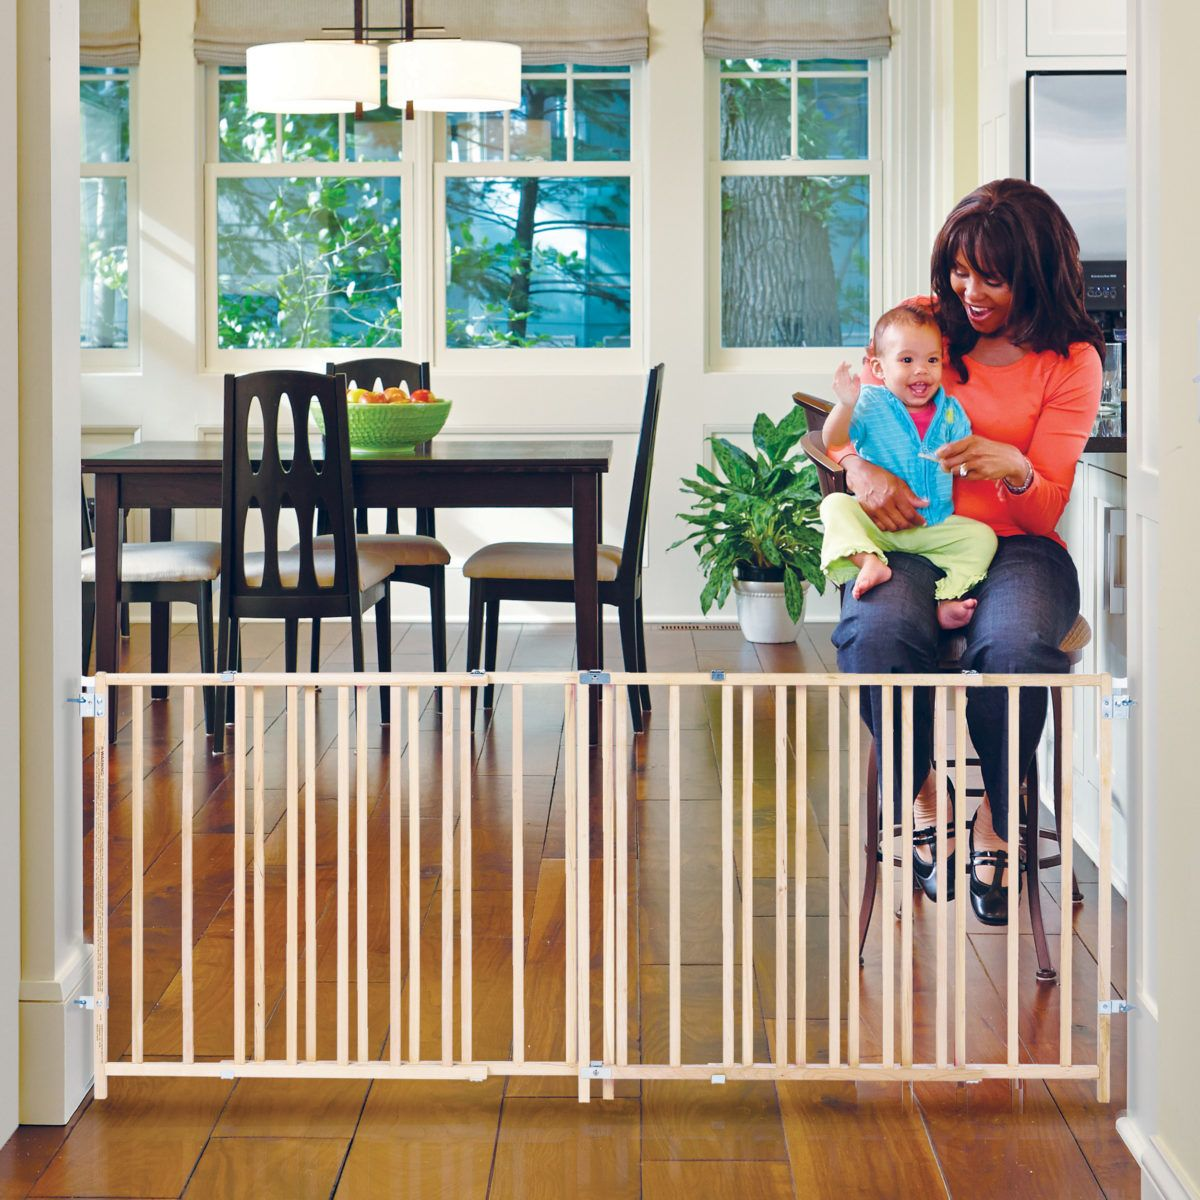 ExtraWide Swing Gate Baby Gates Toddleroo by North